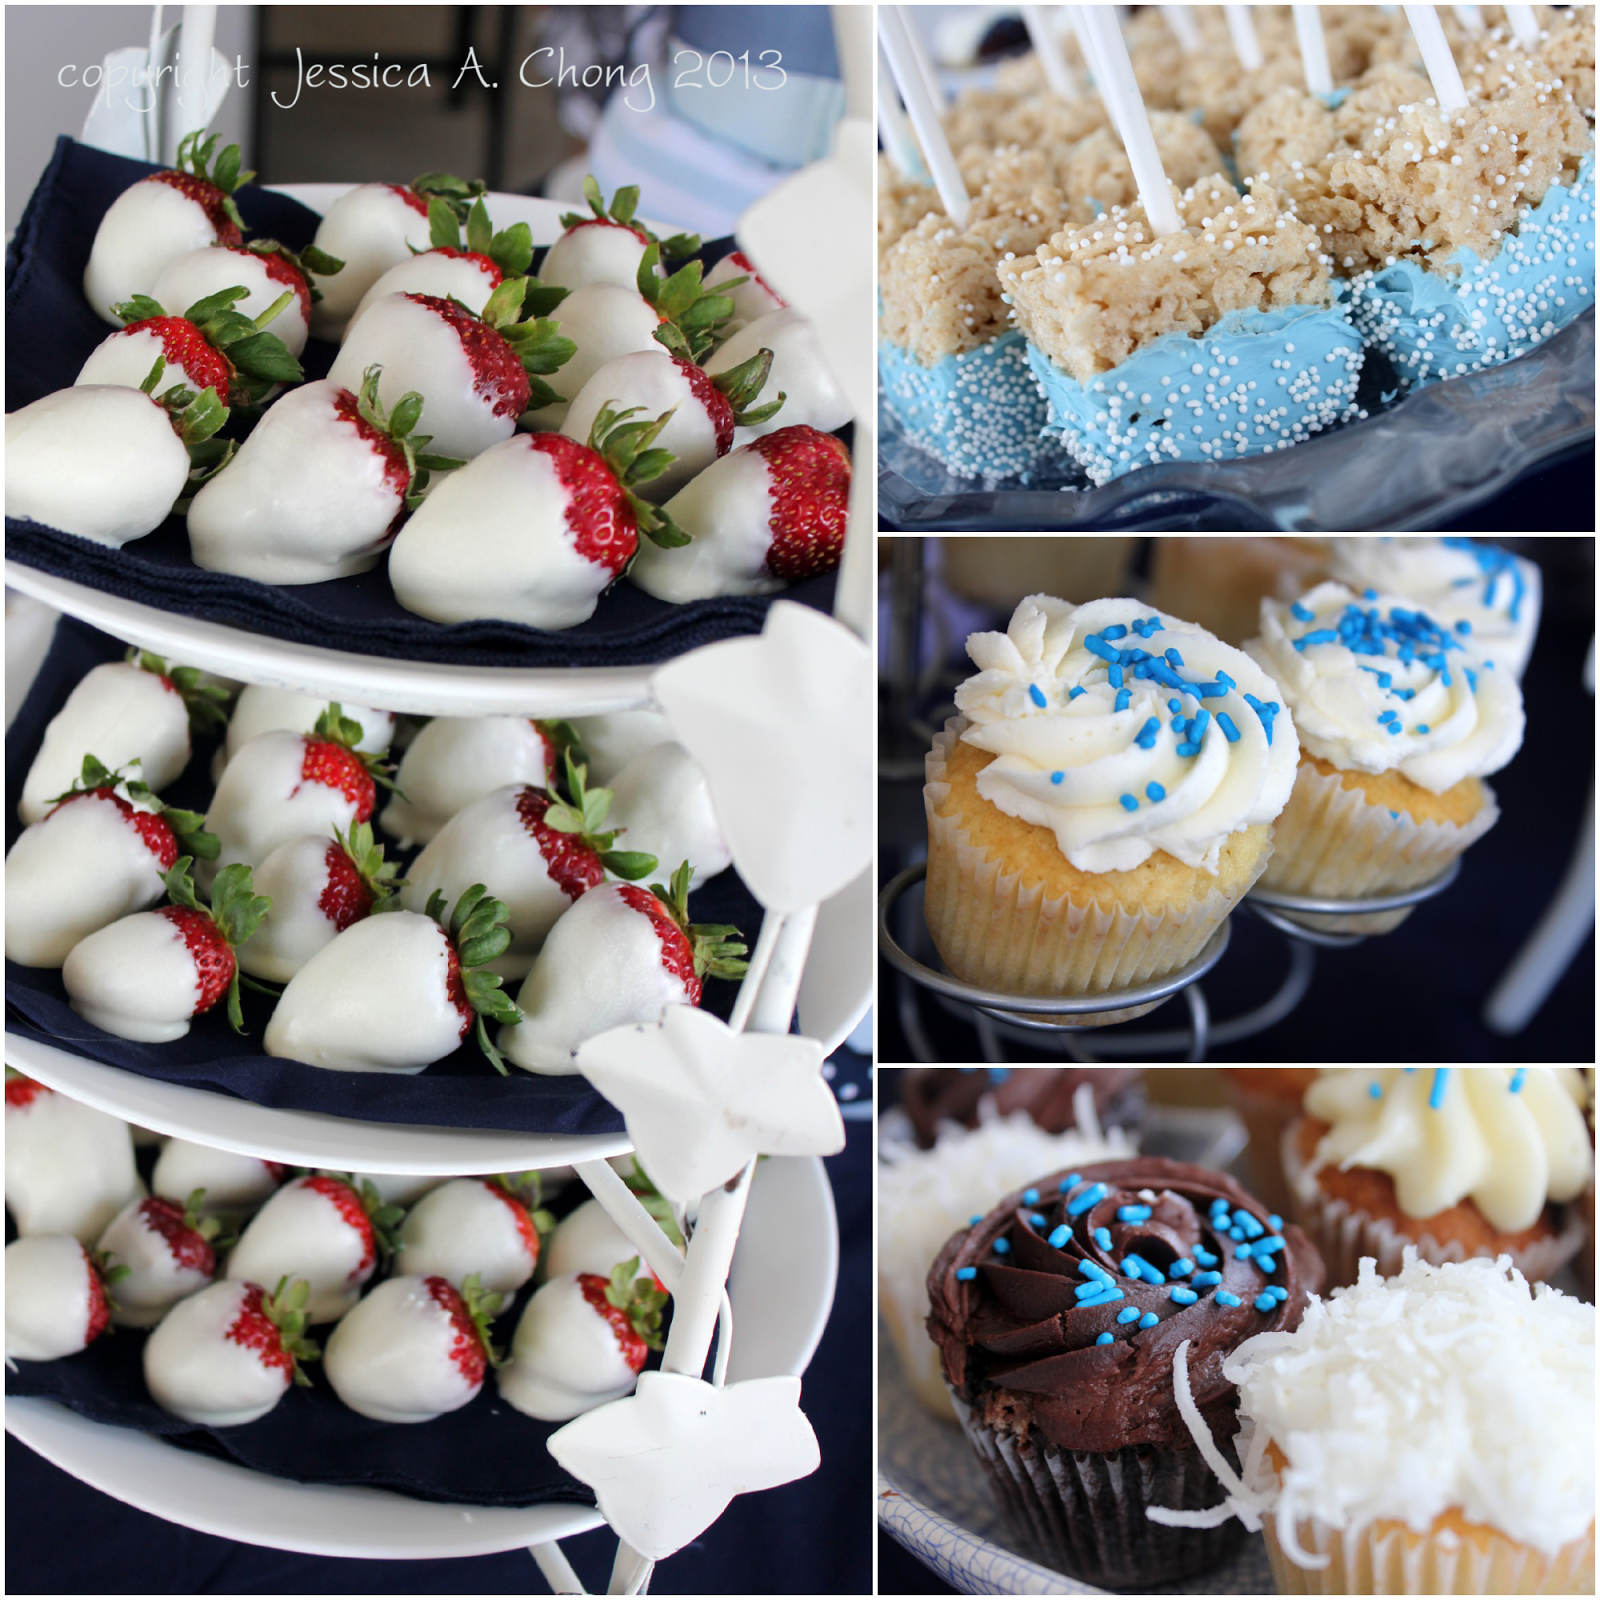 Glamorous Pinterest Baby Shower Ideas For Boy | Omega-Center - Ideas For Baby within Baby Shower Food Ideas For Boy